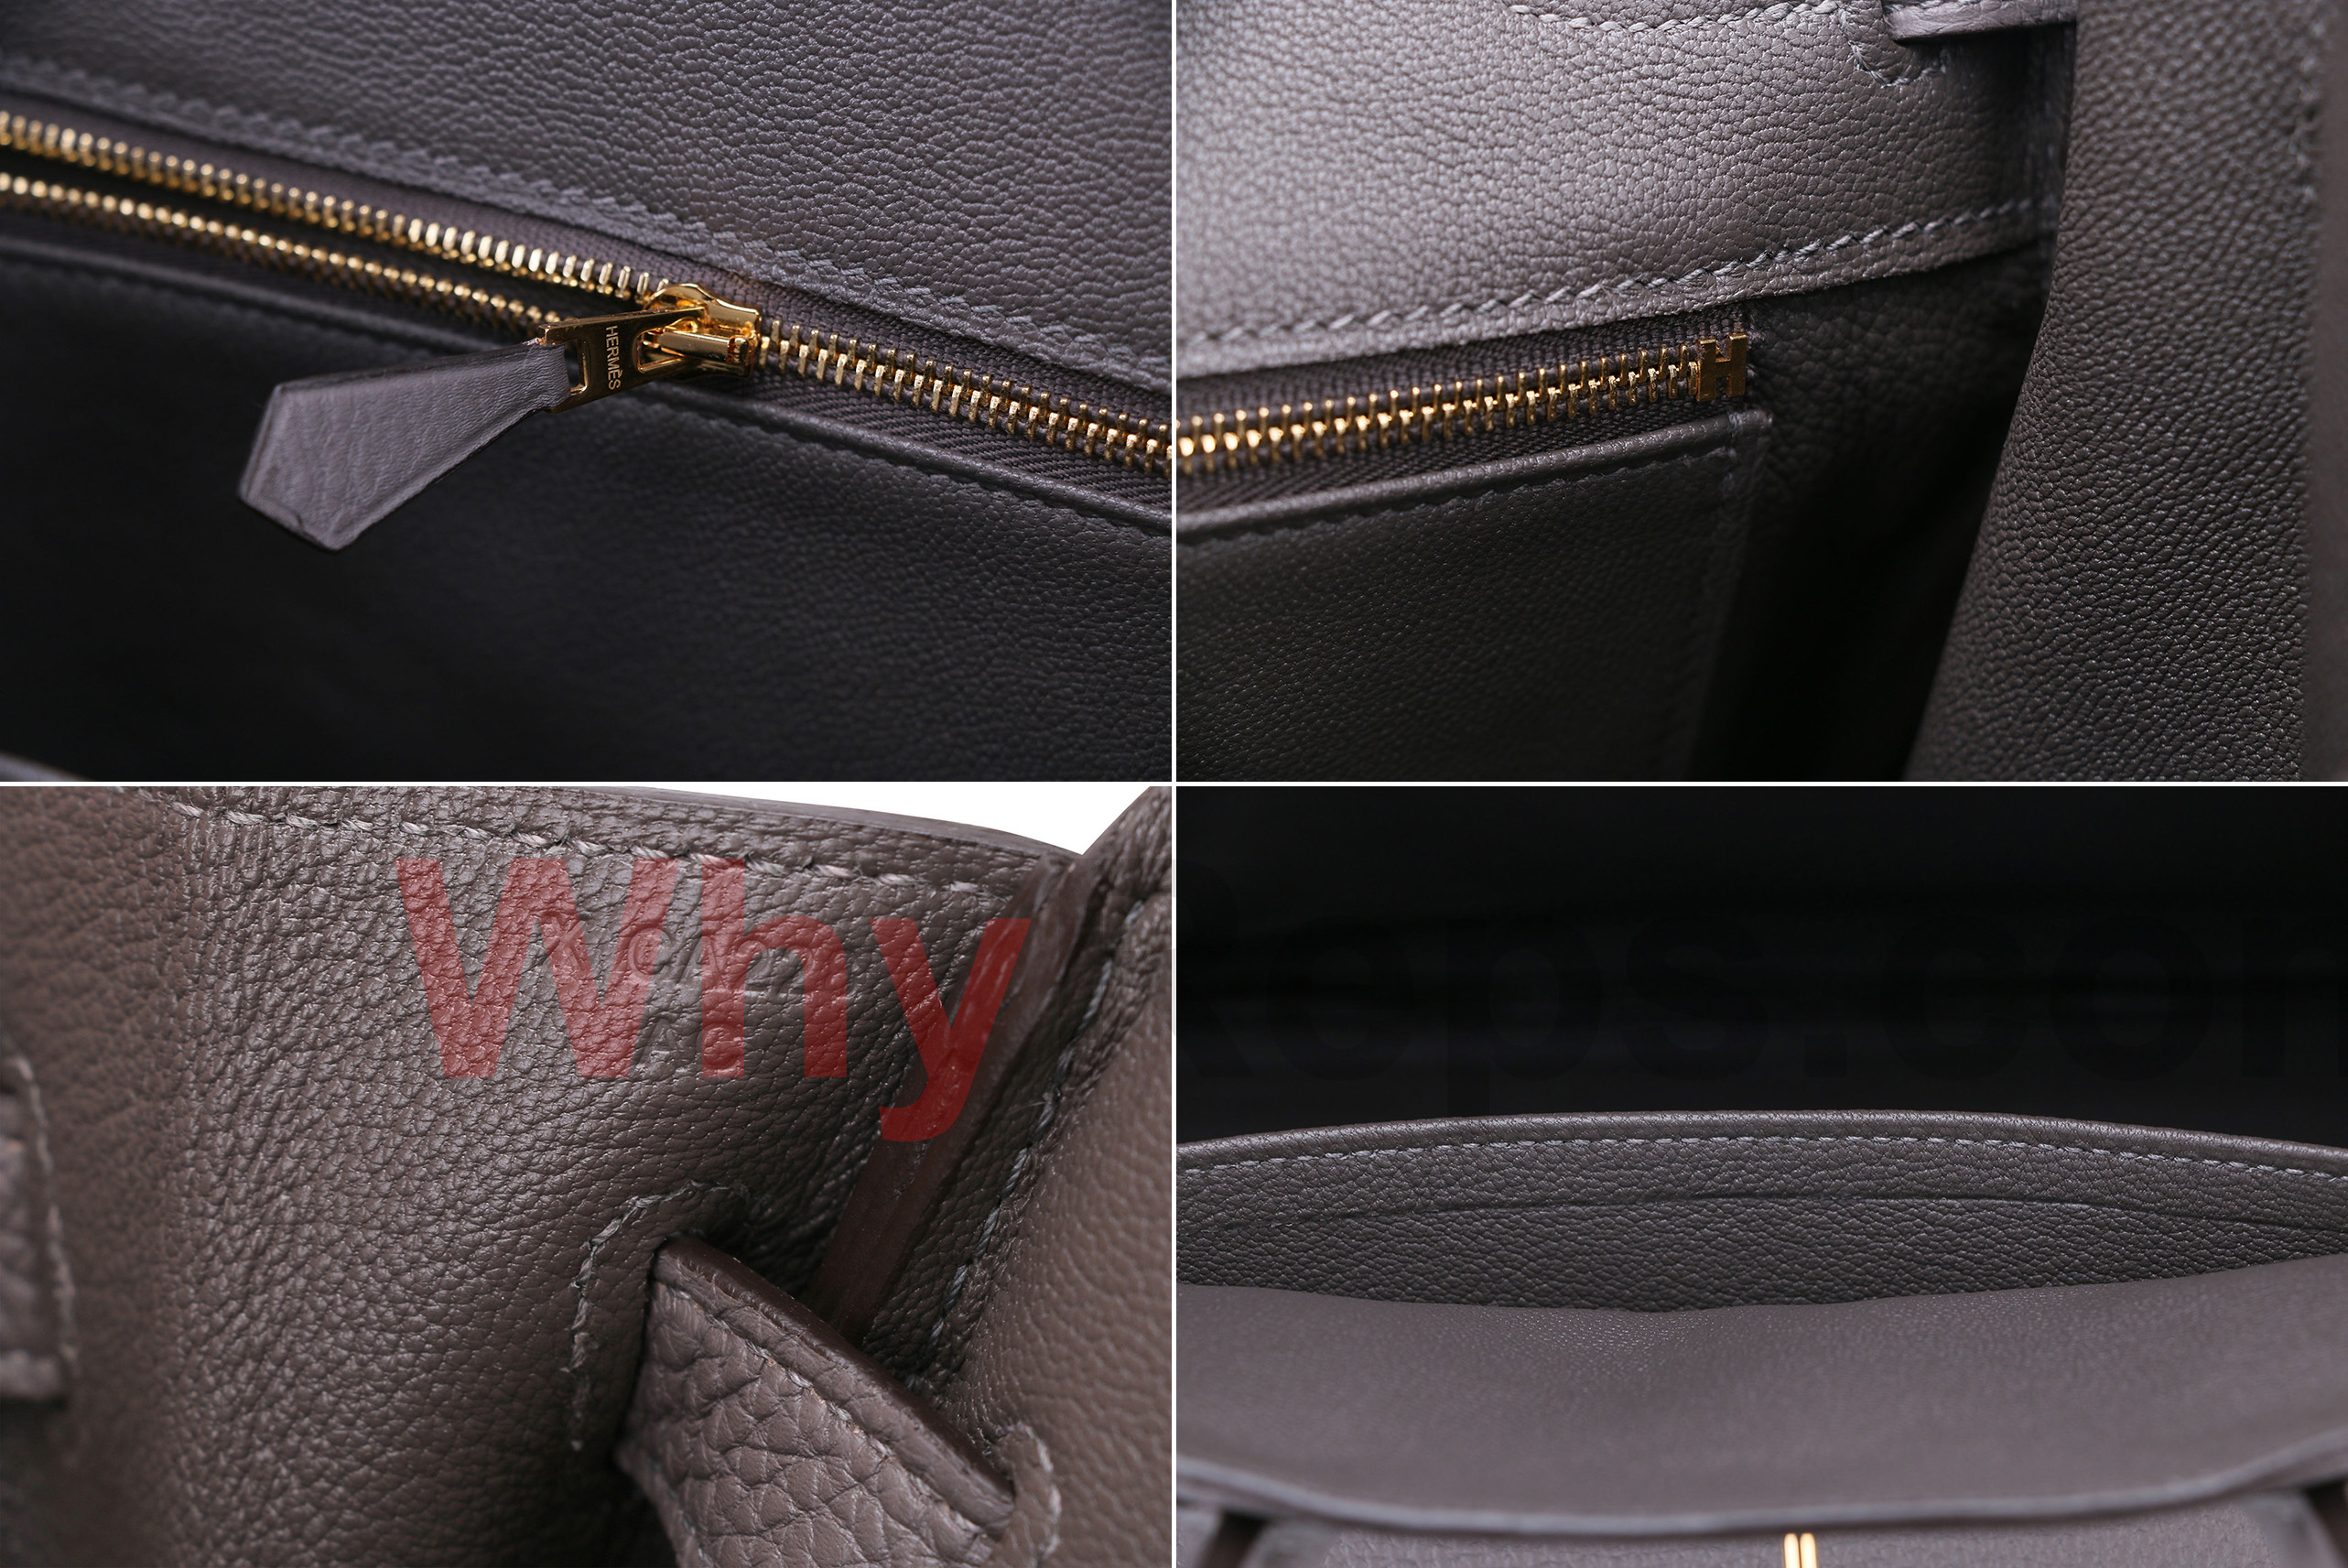 Hermes Birkin interior zipperH end artisan ID chevre leather - Who Sells the Best Hermes Replica? (An In-Depth Review on Fake Birkin)